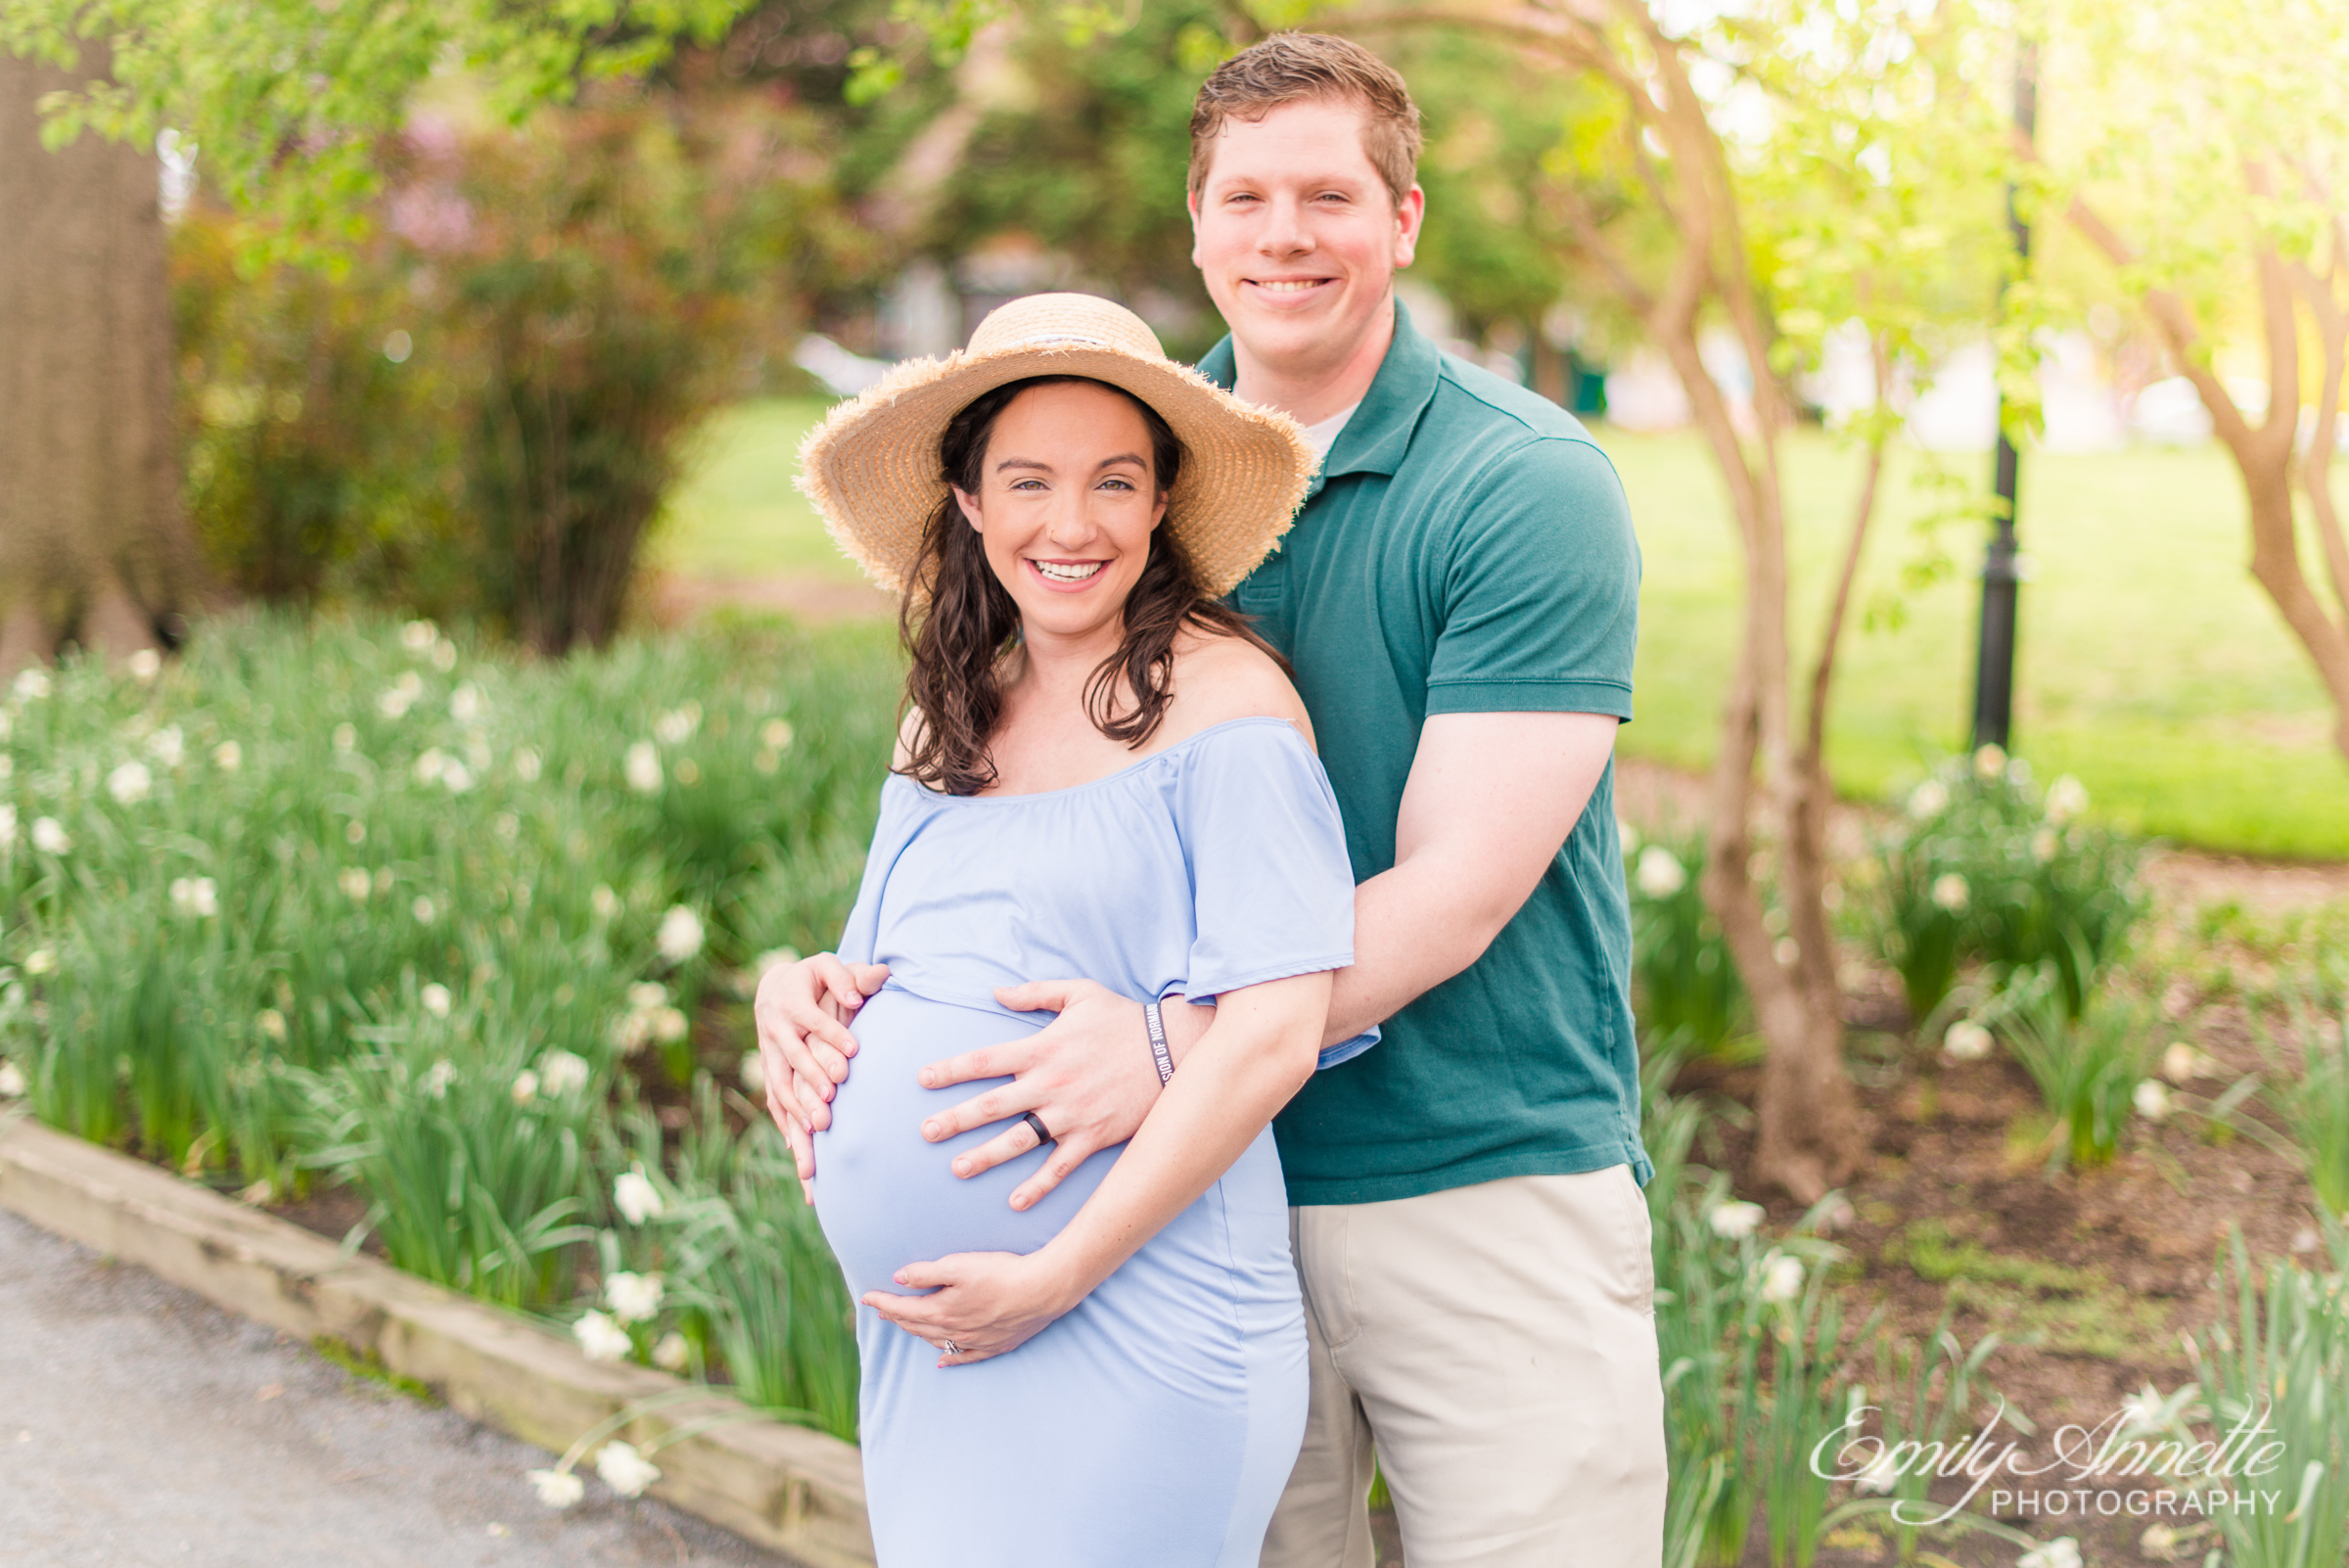 A pregnant woman poses with her husband for spring maternity photos in Old Town Alexandria wearing a romantic blue dress